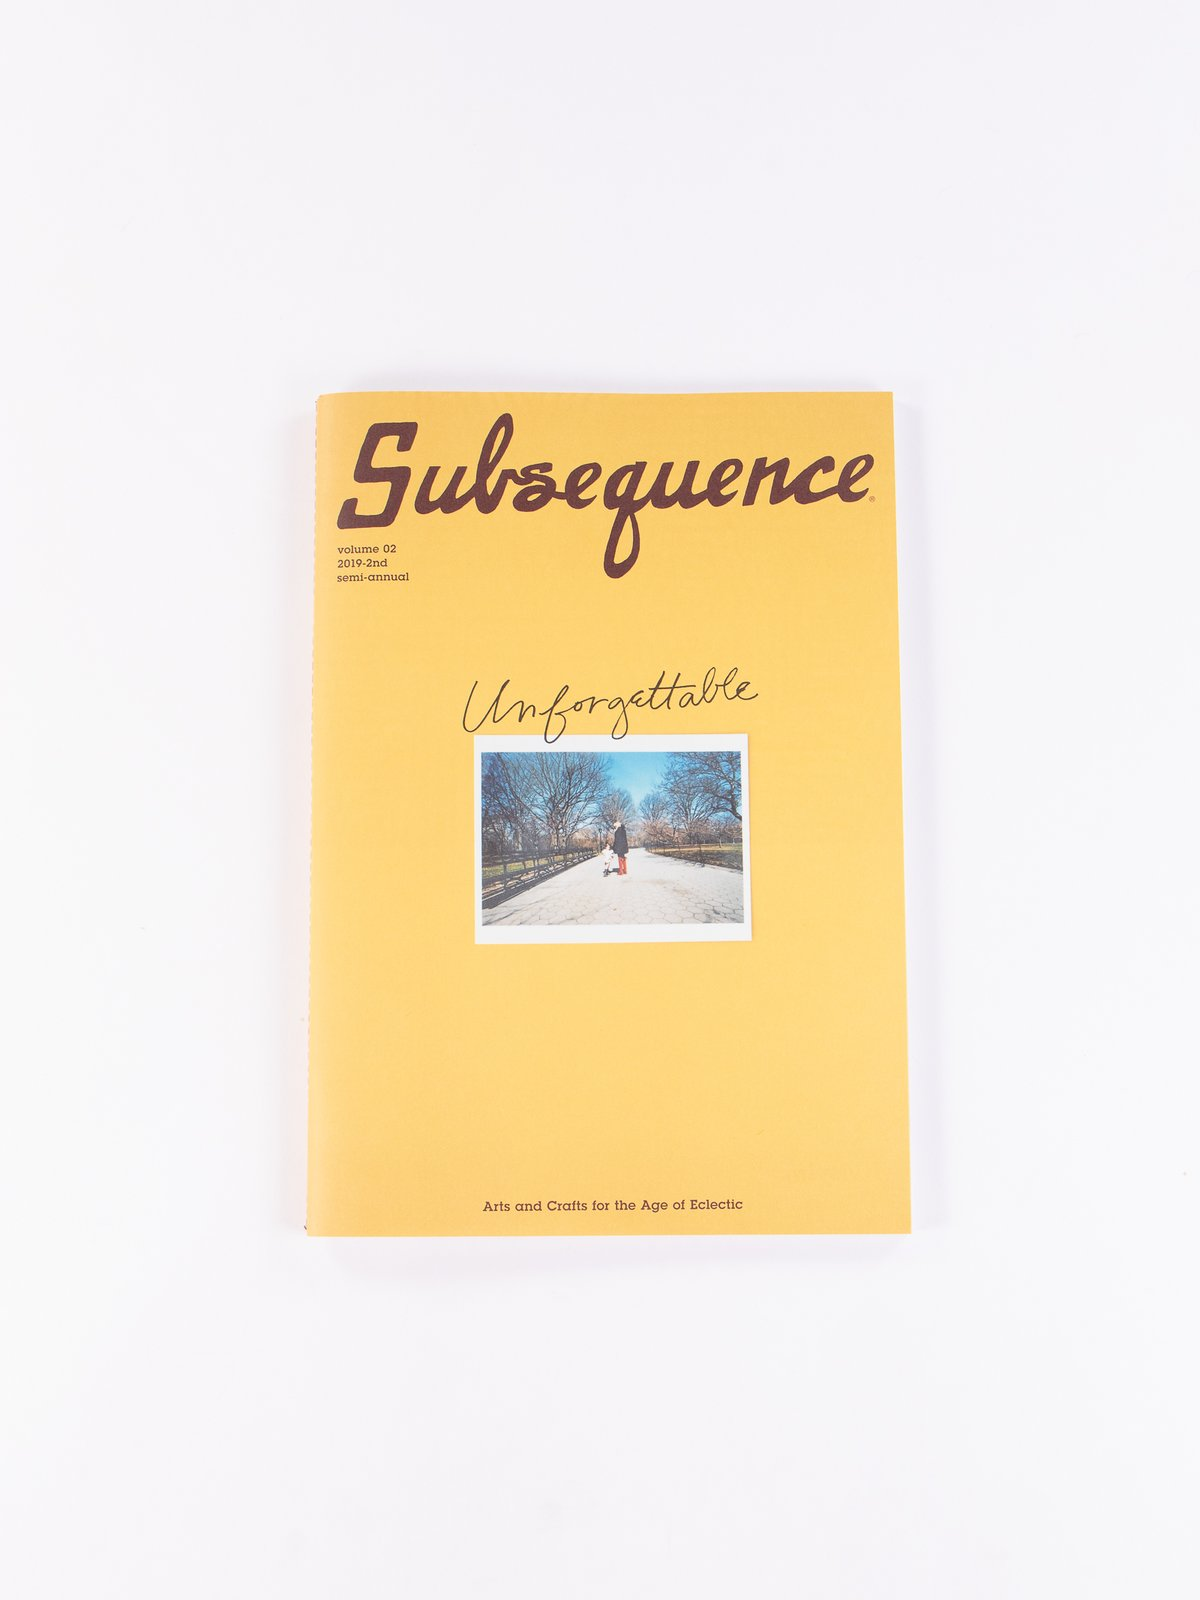 Subsequence Volume 02 - Image 1